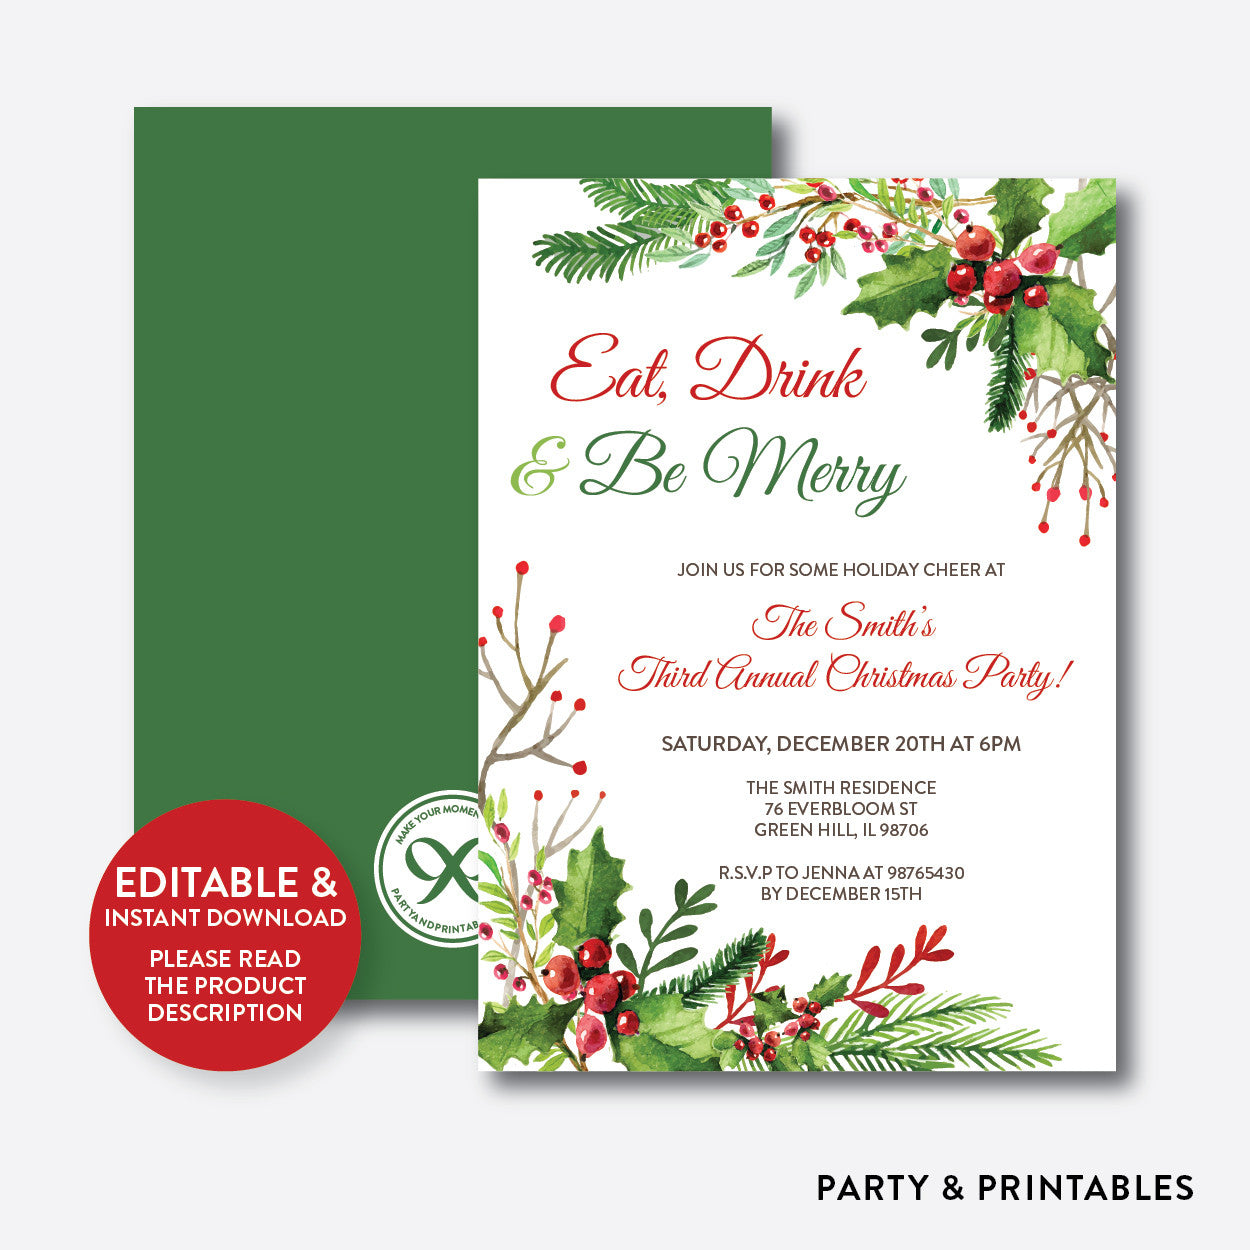 Eat, Drink and Be Merry Christmas Invitation / Editable / Instant Download (SHI.03), invitation - Party and Printables